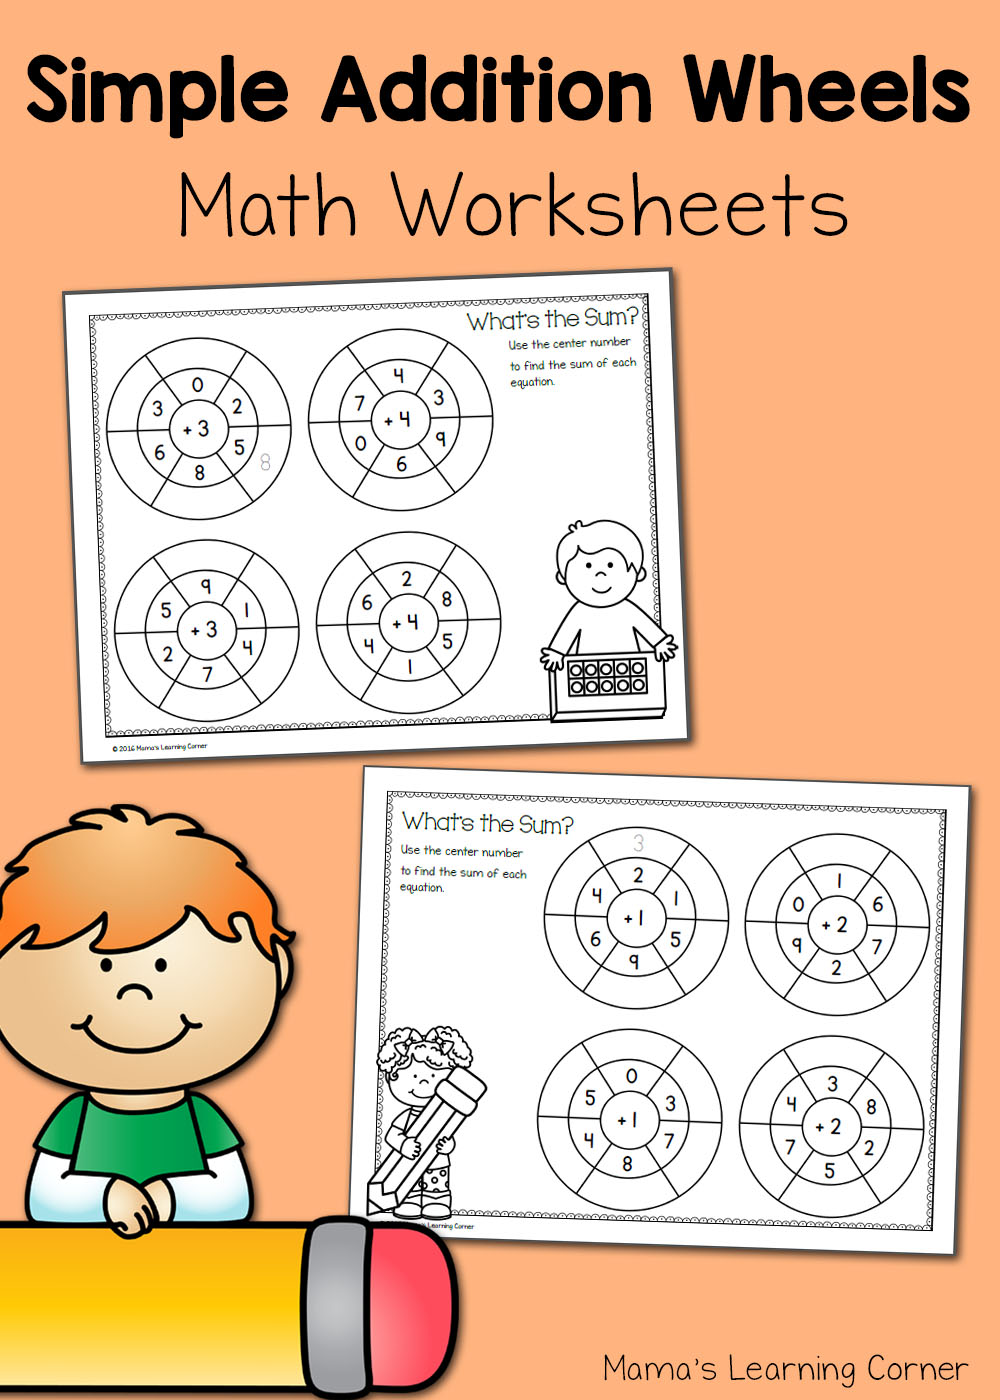 medium resolution of Simple Addition Wheels: Math Worksheets - Mamas Learning Corner